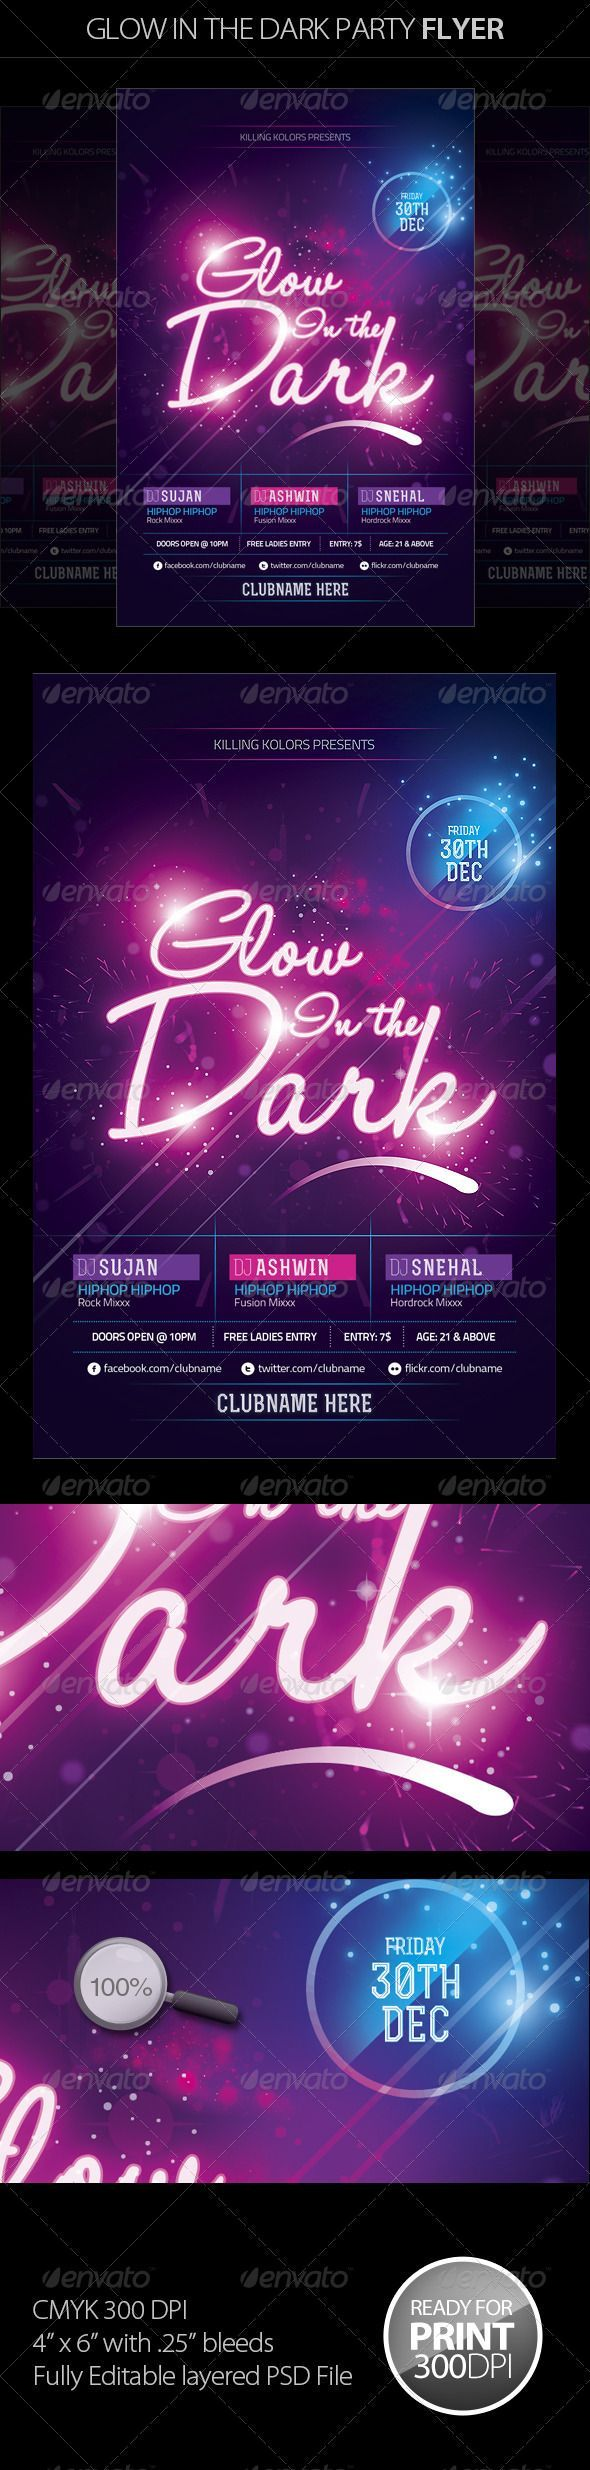 Glow in the Dark Party Flyer II ... celebration, club, disco, flyer, glow, glow in the dark, glow party, led, light, lights, mahantesh nagashetty, mantushetty, music, neon, nightclub, party, party flyer, poster, print, summer party, typo flyer